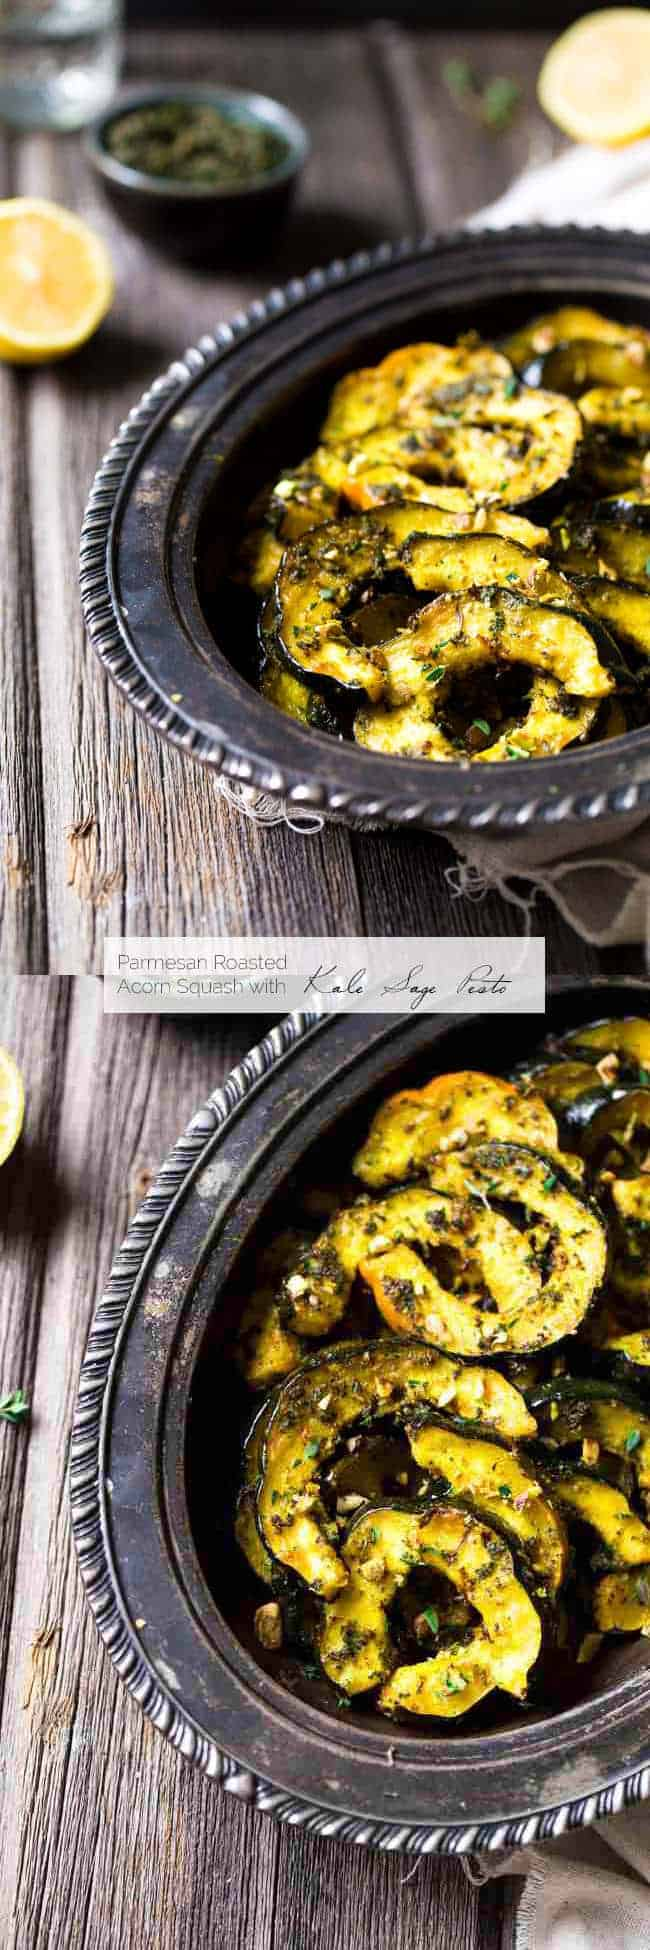 Pamesan Toasted Acorn Squash with Sage Kale Pesto - An easy side dish that is perfect for entertaining or a weeknight dinner! | Foodfaithfitness.com | #recipe